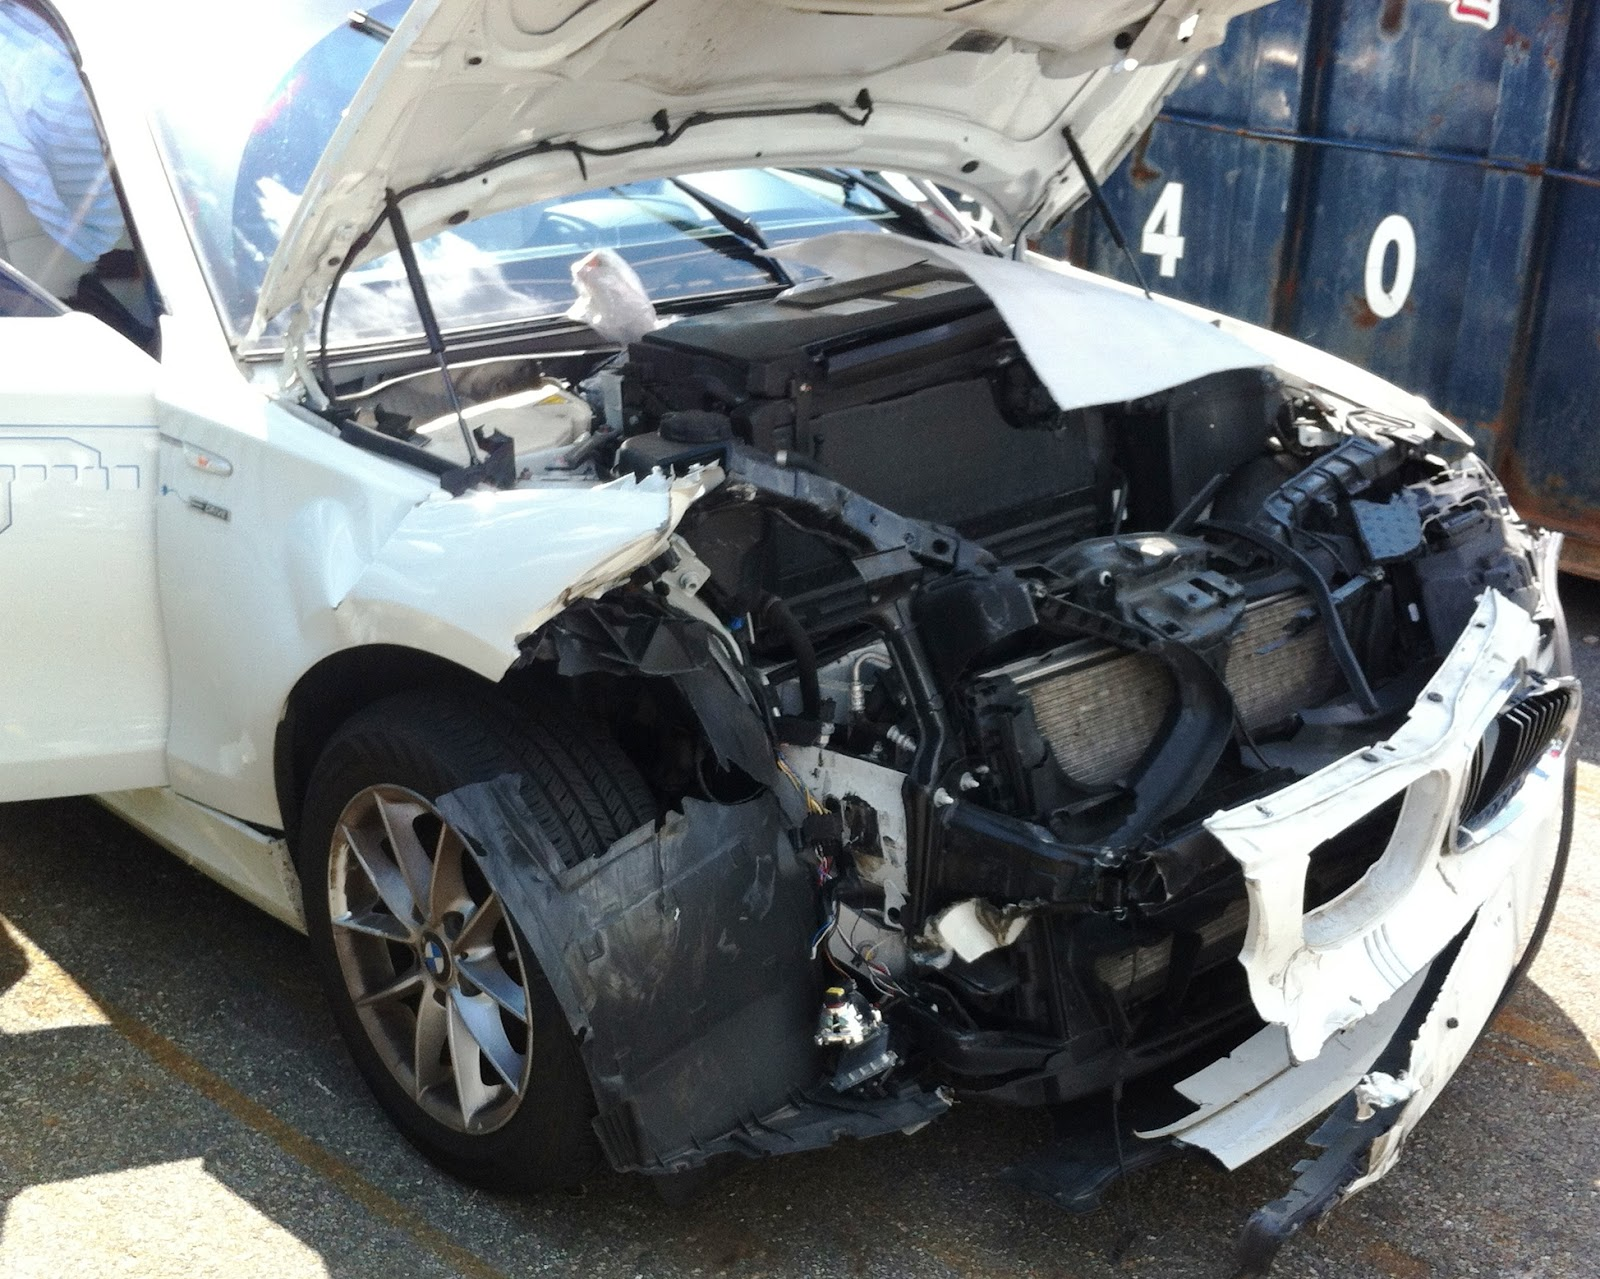 activee mobility: driving an electric bmw 1-series: the untimely end